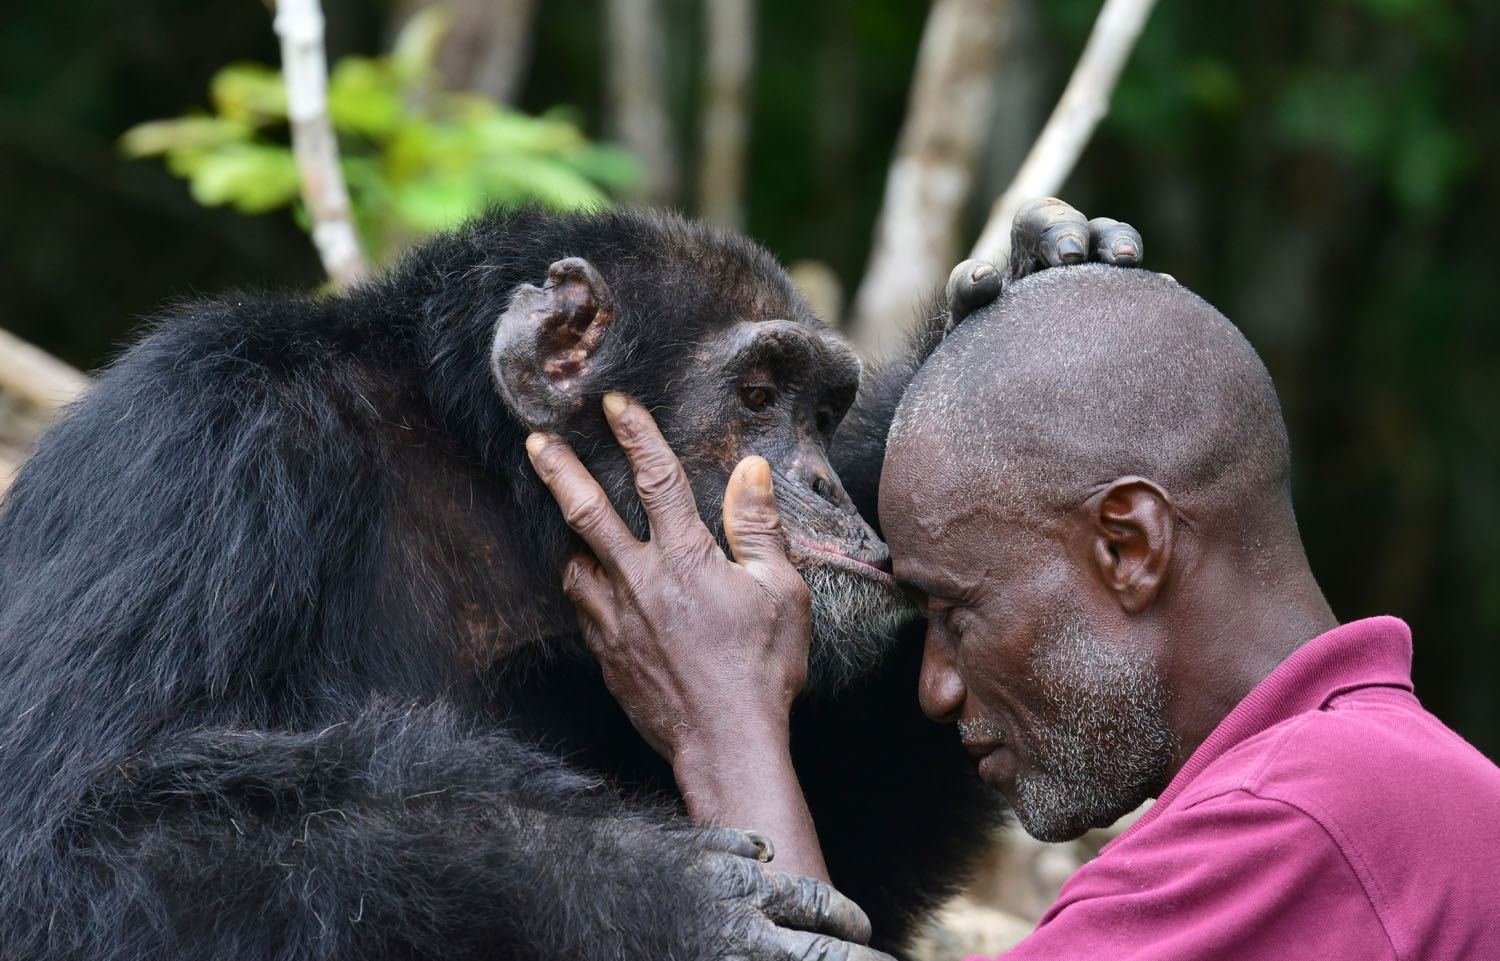 Germain Djenemaya Koidja, a carer paid for by the association Les Amis de Ponso (Friends of Ponso), interacts with Ponso, the only surviving chimpanzee of a colony of 20 apes, on Chimpanzee Island near the town of Grand Lahou, Ivory C